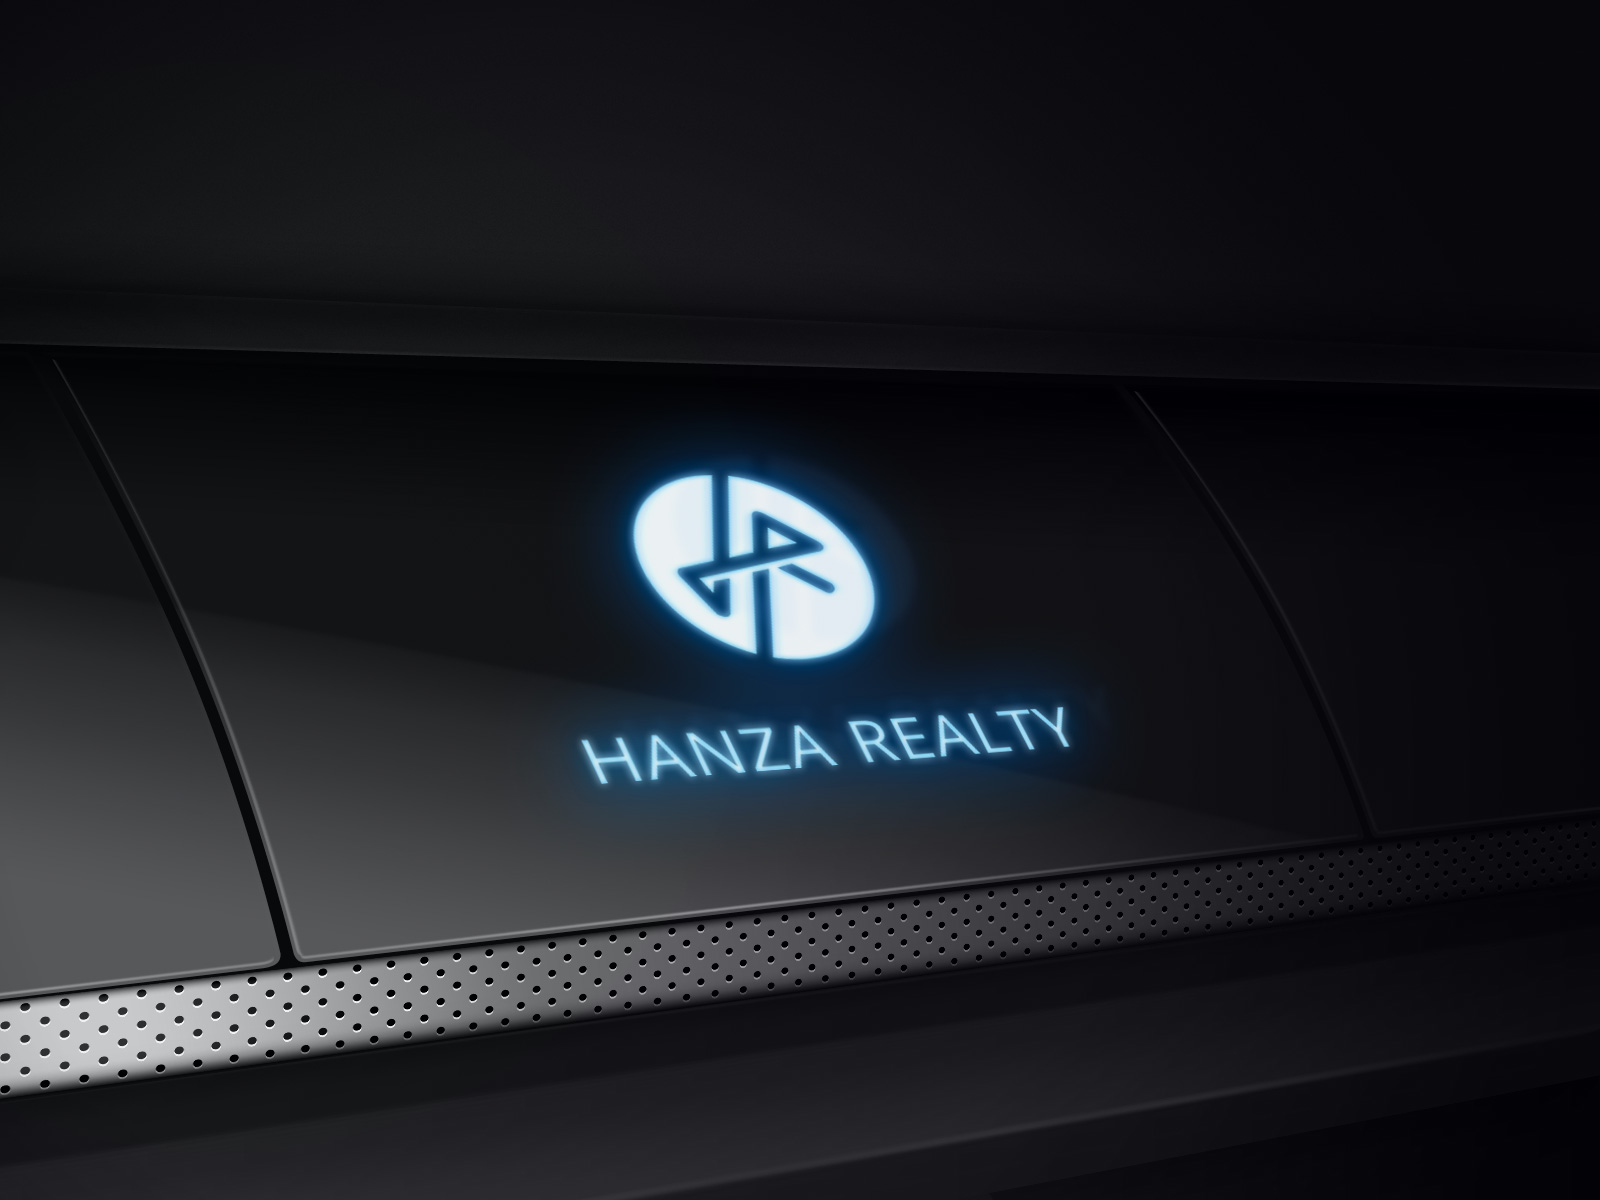 Logo Design by Robiul Robin - Entry No. 472 in the Logo Design Contest Logo Design for Hanza Realty.